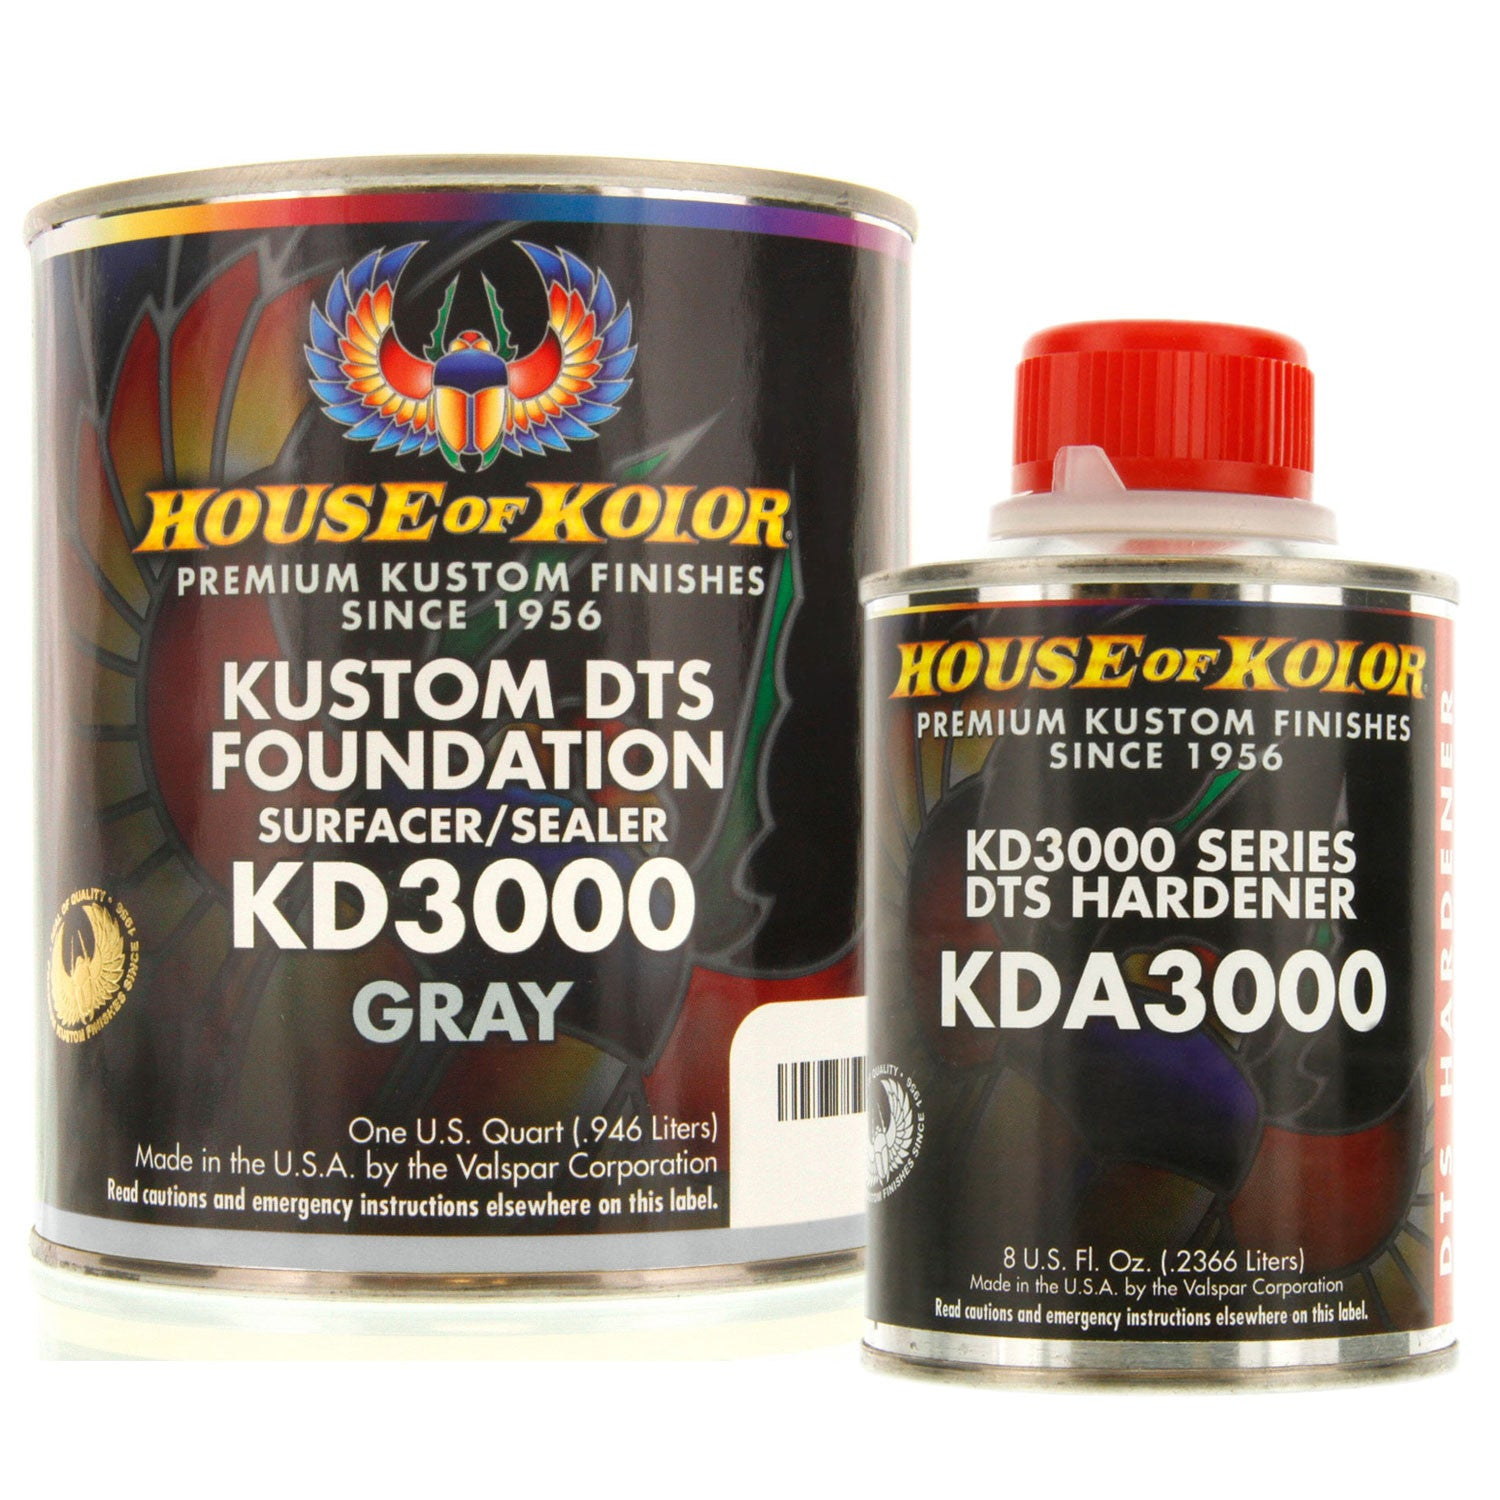 House of Kolor Gray Epoxy Primer Kit, 1 Quart with 1/2 Pint Activator